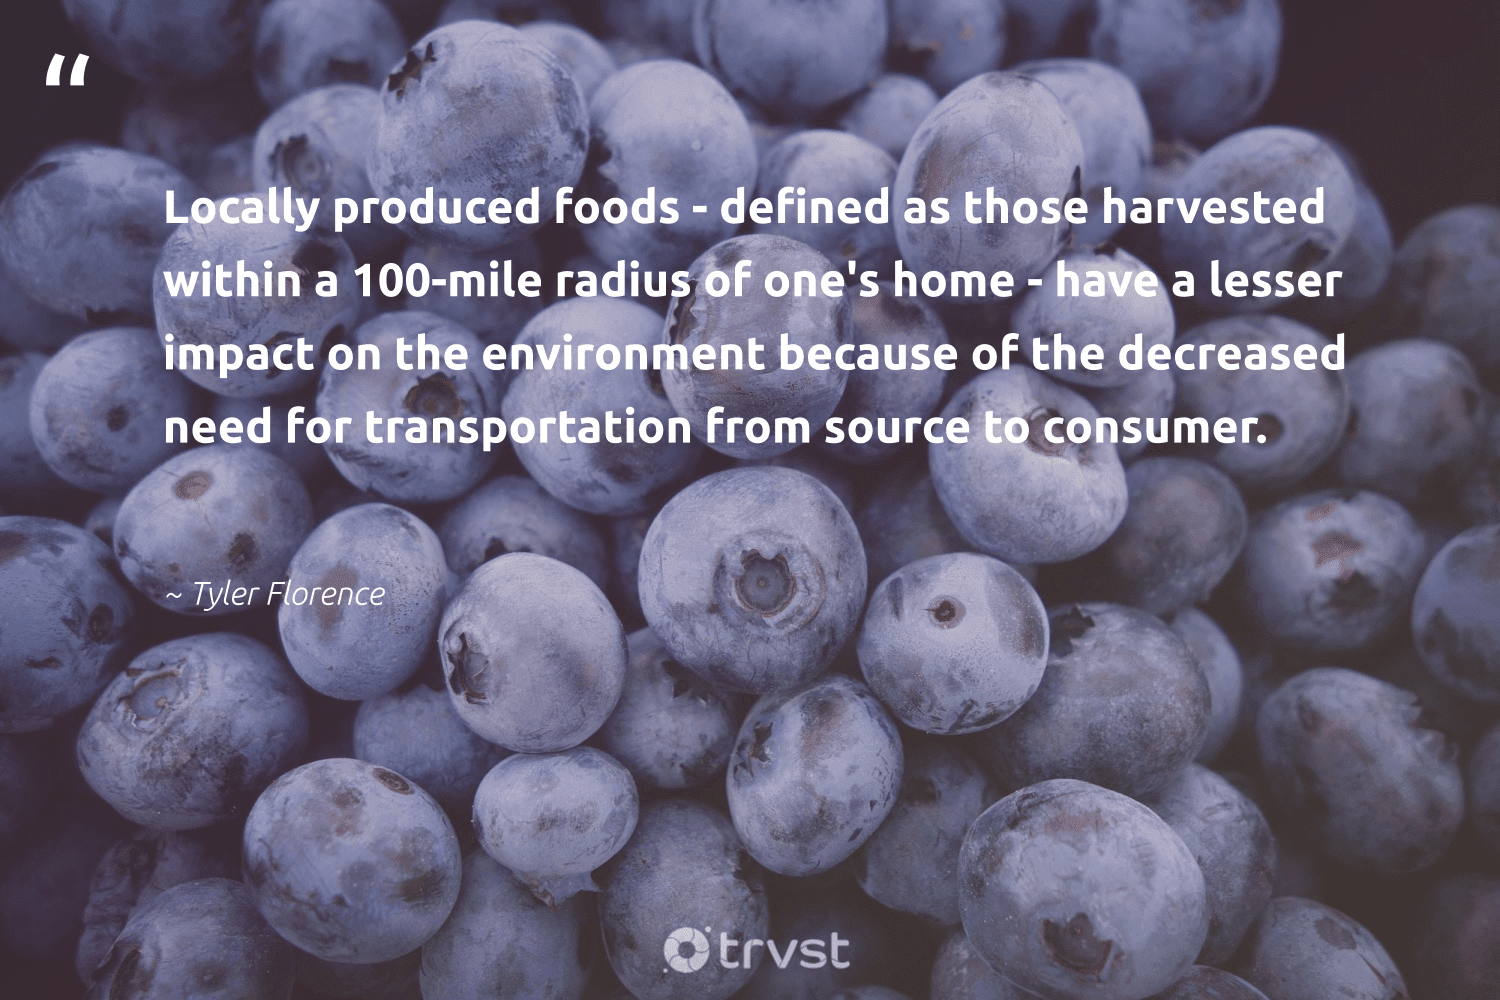 """""""Locally produced foods - defined as those harvested within a 100-mile radius of one's home - have a lesser impact on the environment because of the decreased need for transportation from source to consumer.""""  - Tyler Florence #trvst #quotes #impact #environment #nature #nevergiveup #naturelovers #thinkgreen #conservation #health #natureseekers #socialchange"""